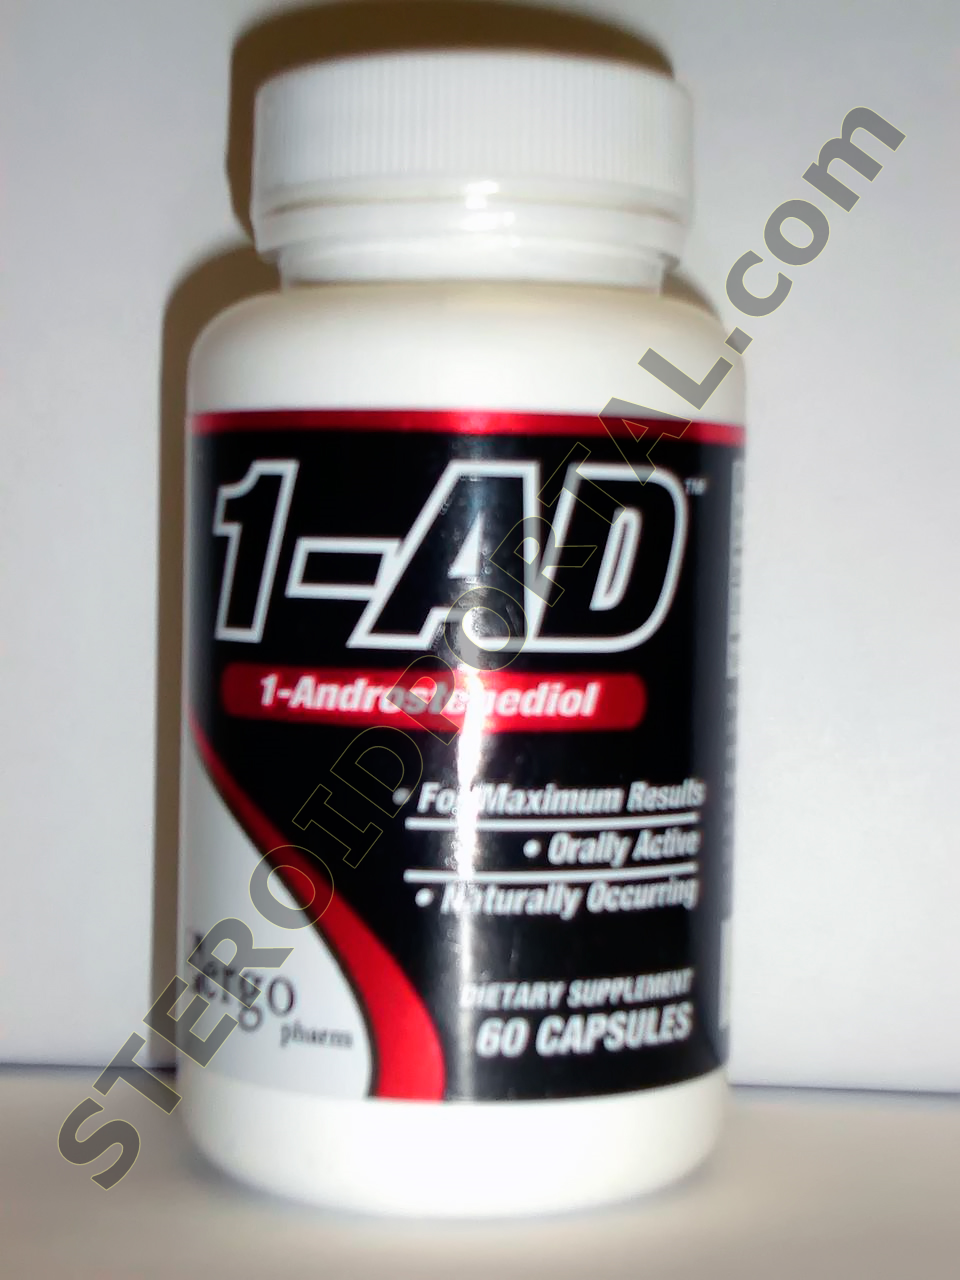 t3 steroid weight loss